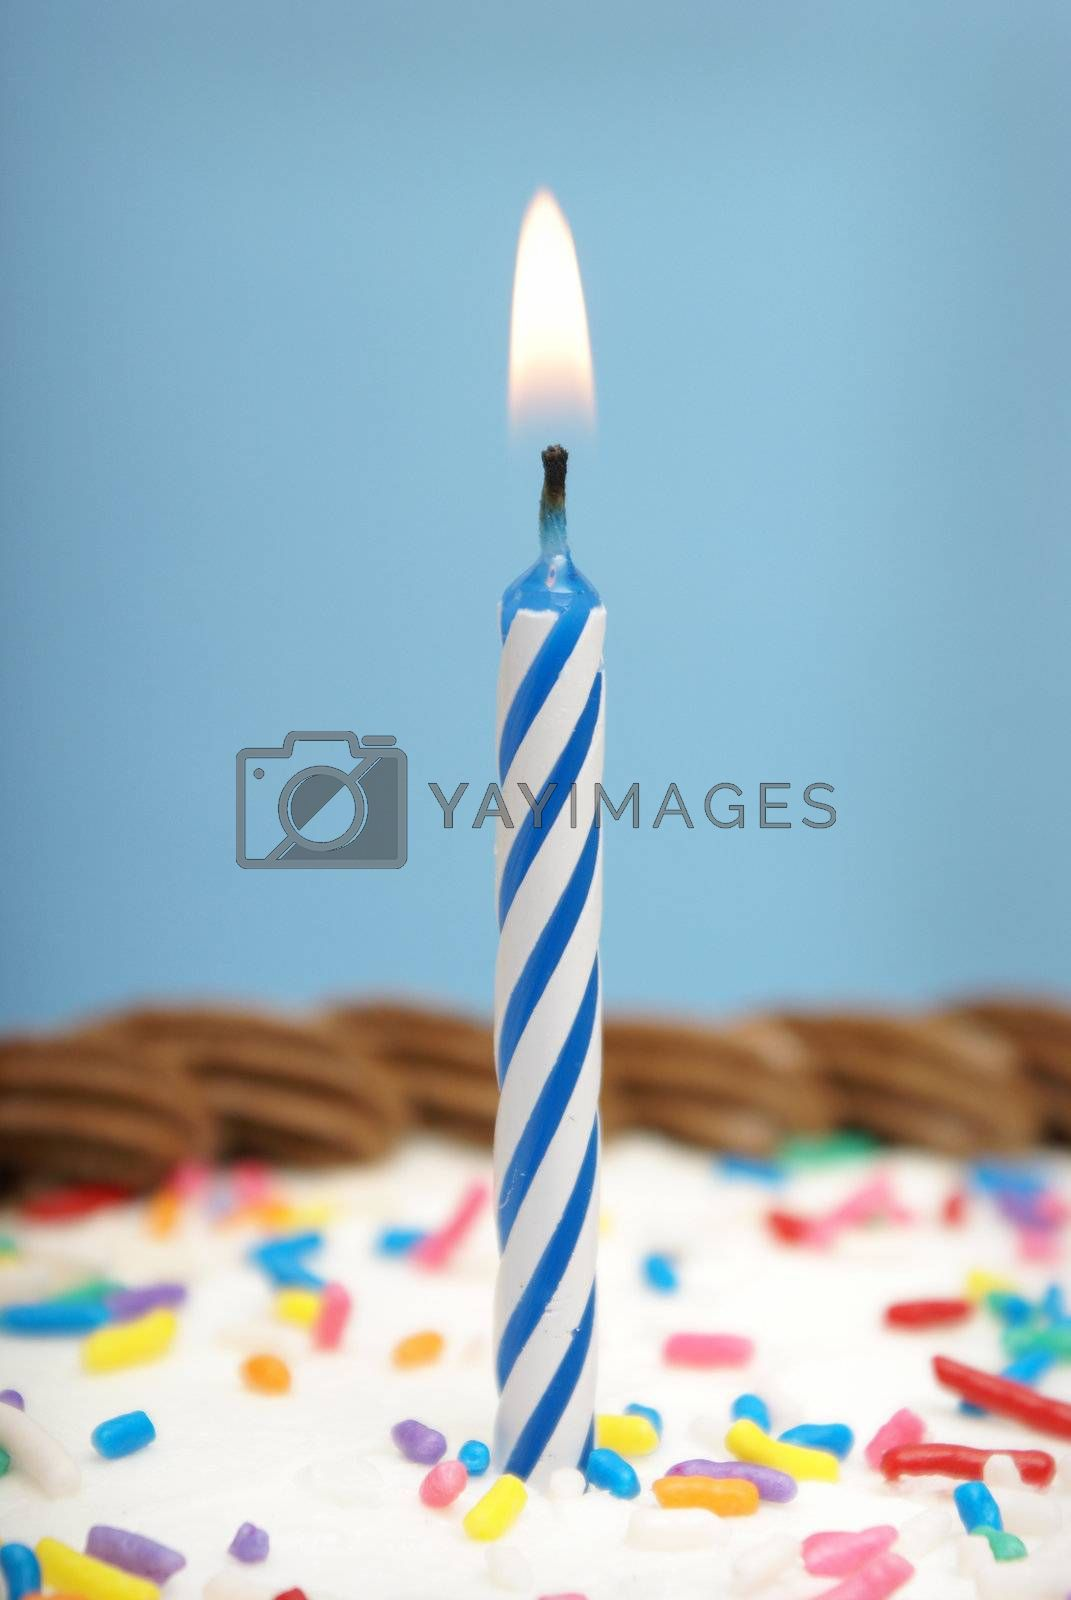 A celebration using a candle and some cake.